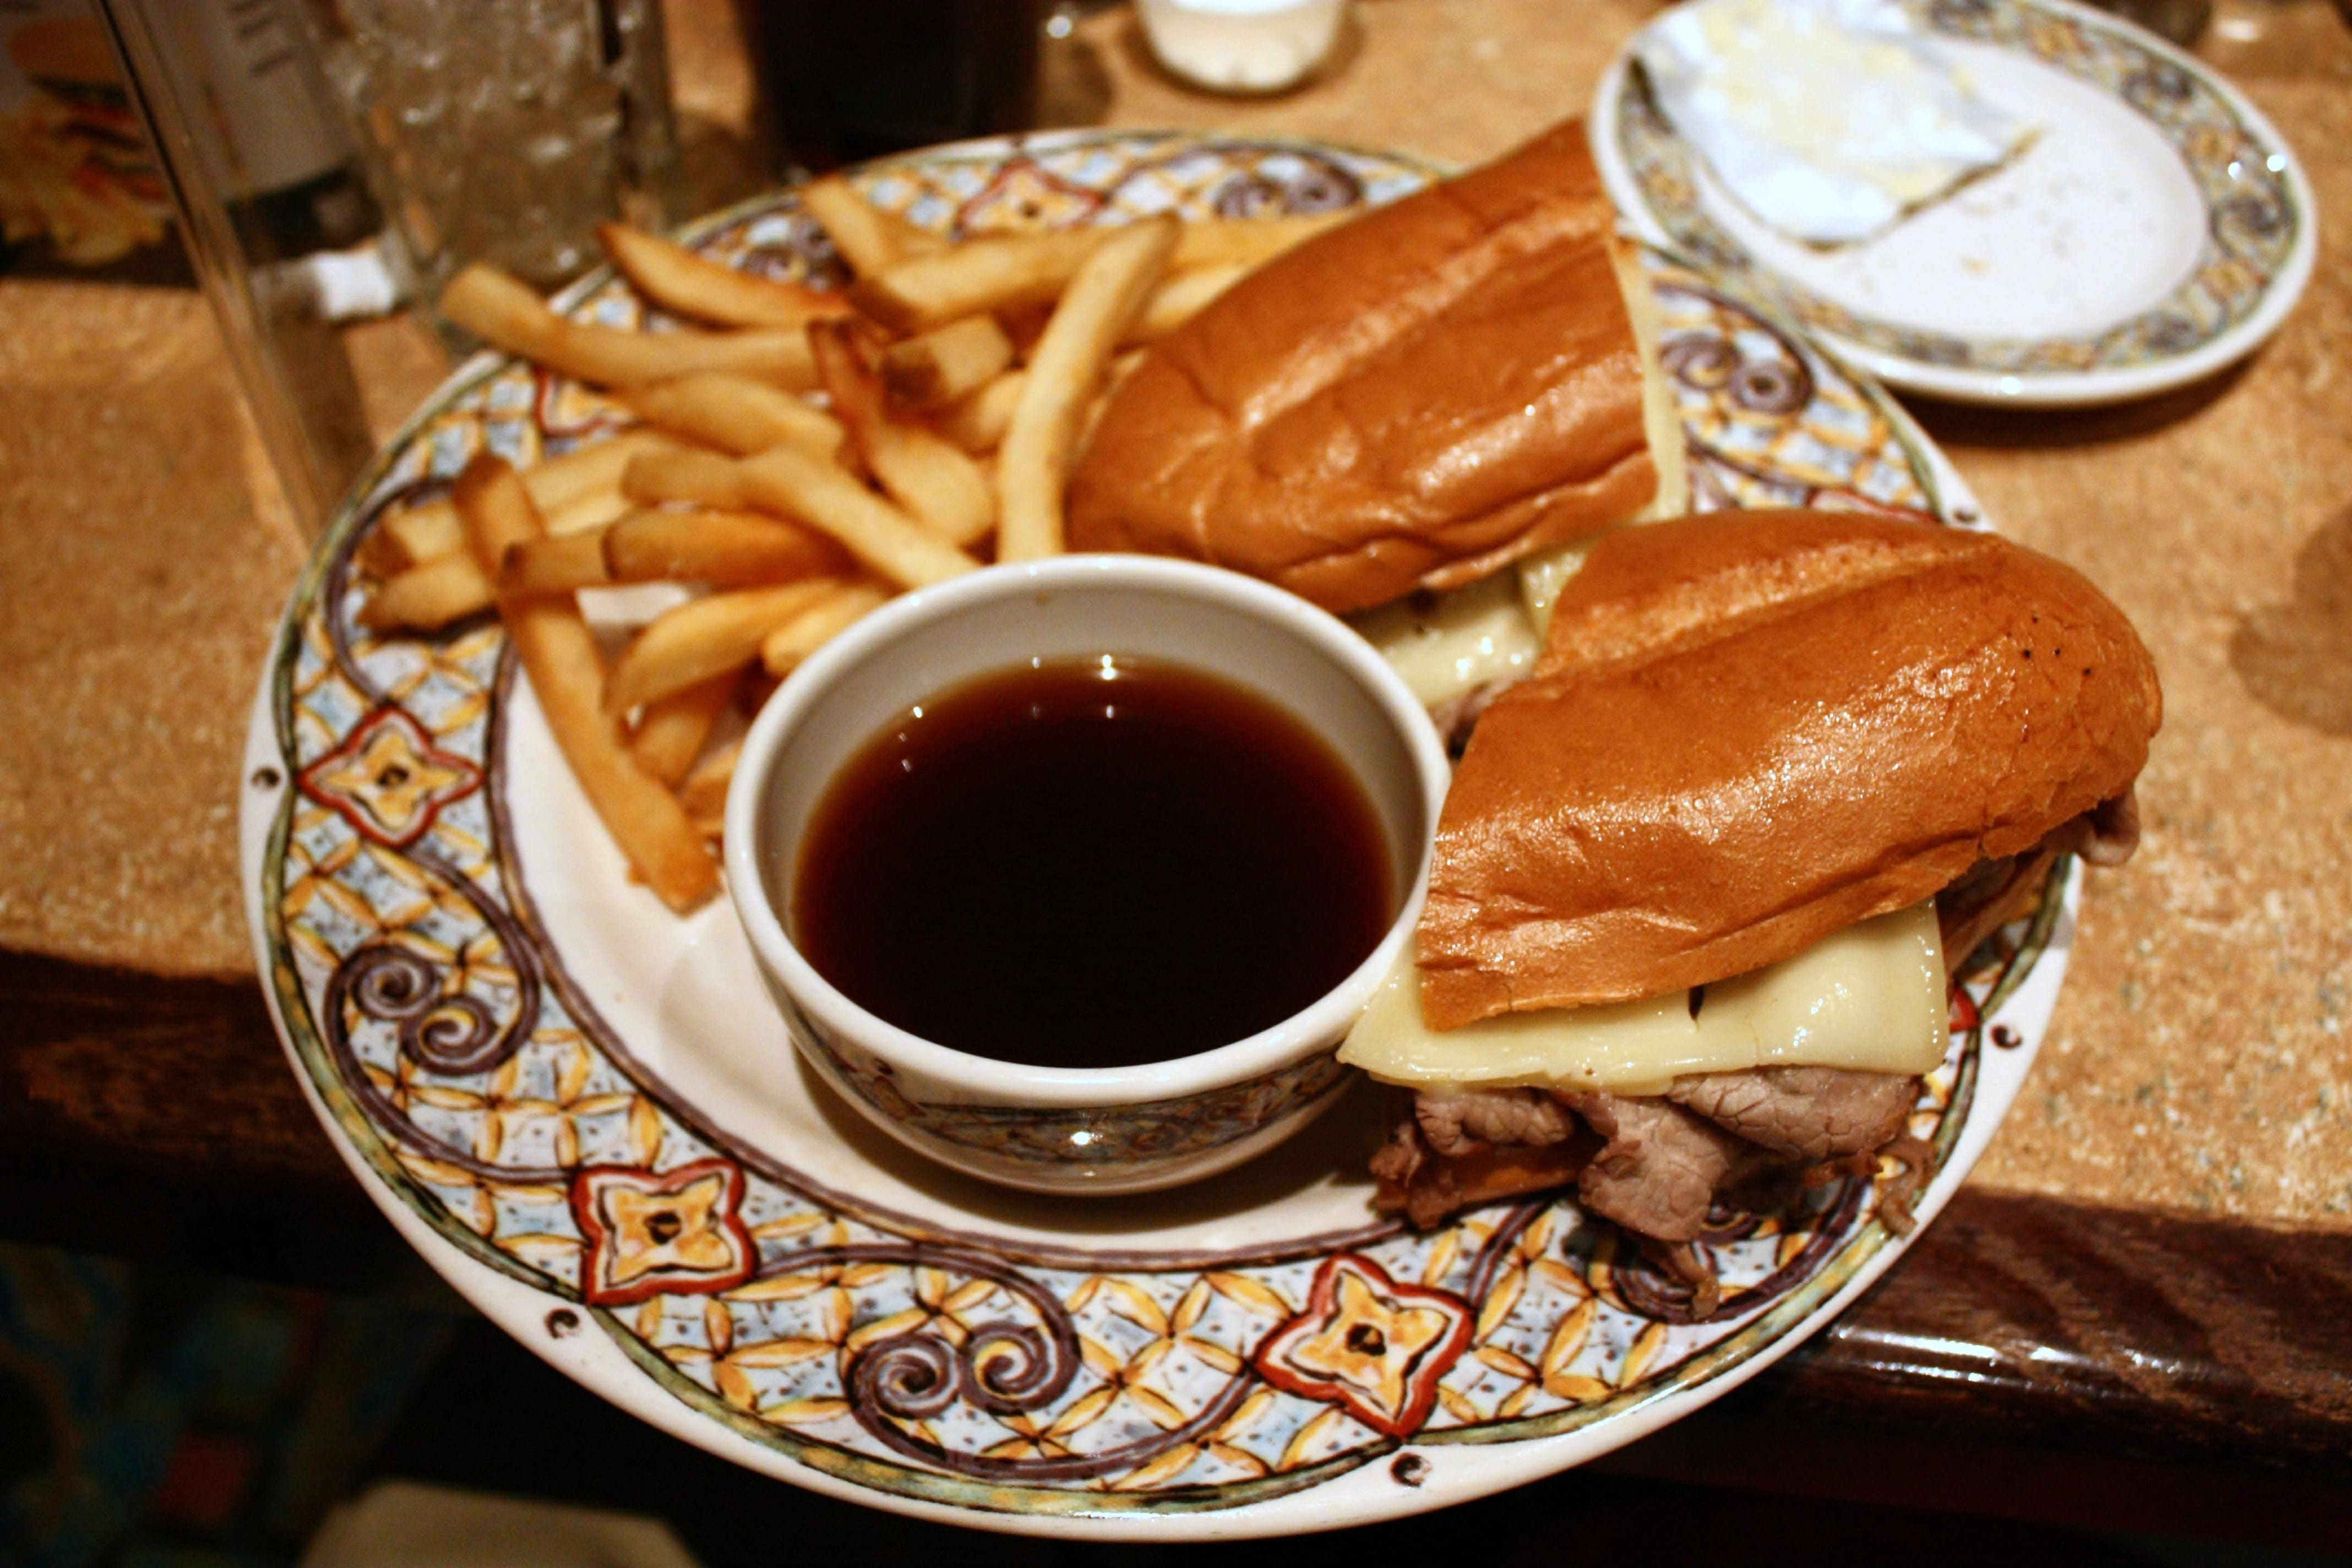 A delicious place to visit in LA is Cole's, or Philippe's, both of whom claim to have invented the French dip